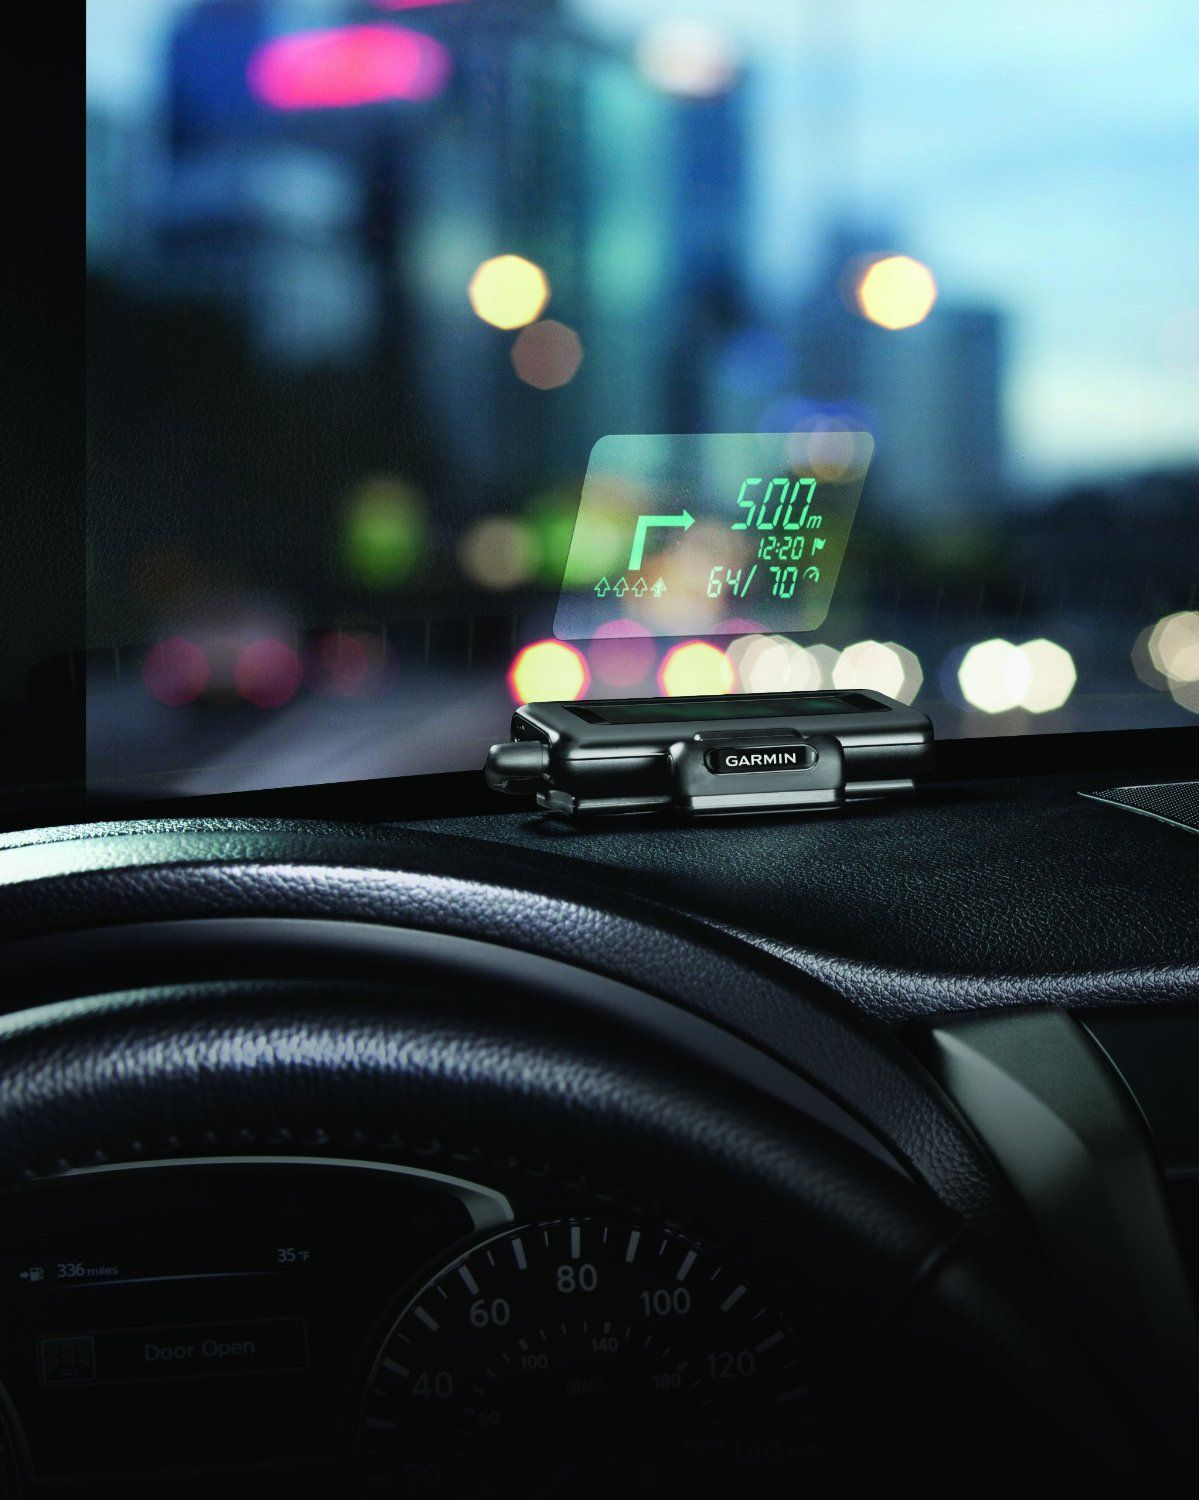 Car Heads-Up Display: No one likes being told what to do and where to go. Especially not by a robotic woman who is usually wrong. Enter the Garmin Heads-Up Display (HUD) Dashboard Mounted Windshield Projector. This bad boy keeps your hands and eyes free to navigate the ...Read More @ http://greateststuffonearth.com/car-heads-up-display/